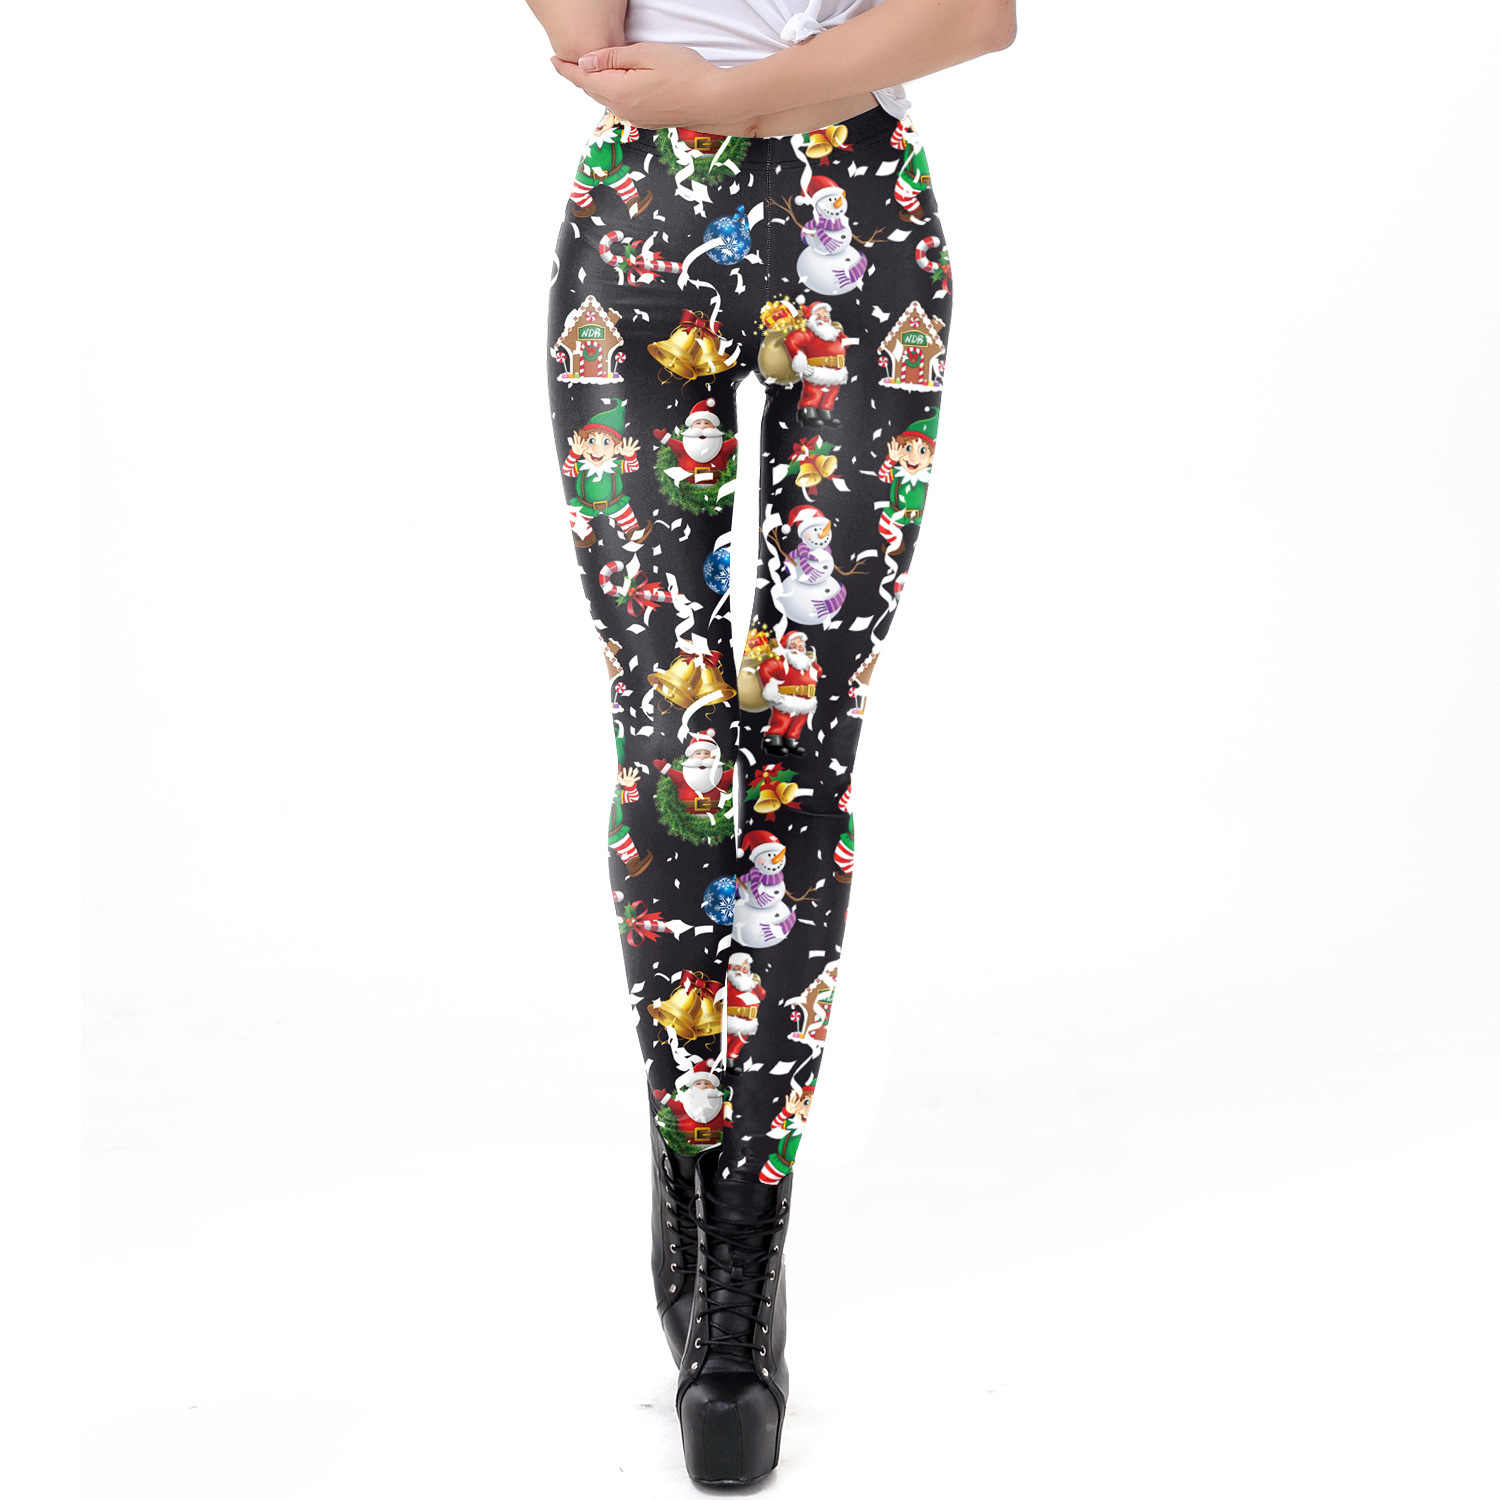 01783d8d86d0e8 2018 Christmas Santa Claus Print Fitness Leggings Women Sexy Slim Leggings  High Waist Elastic Causal Leggings